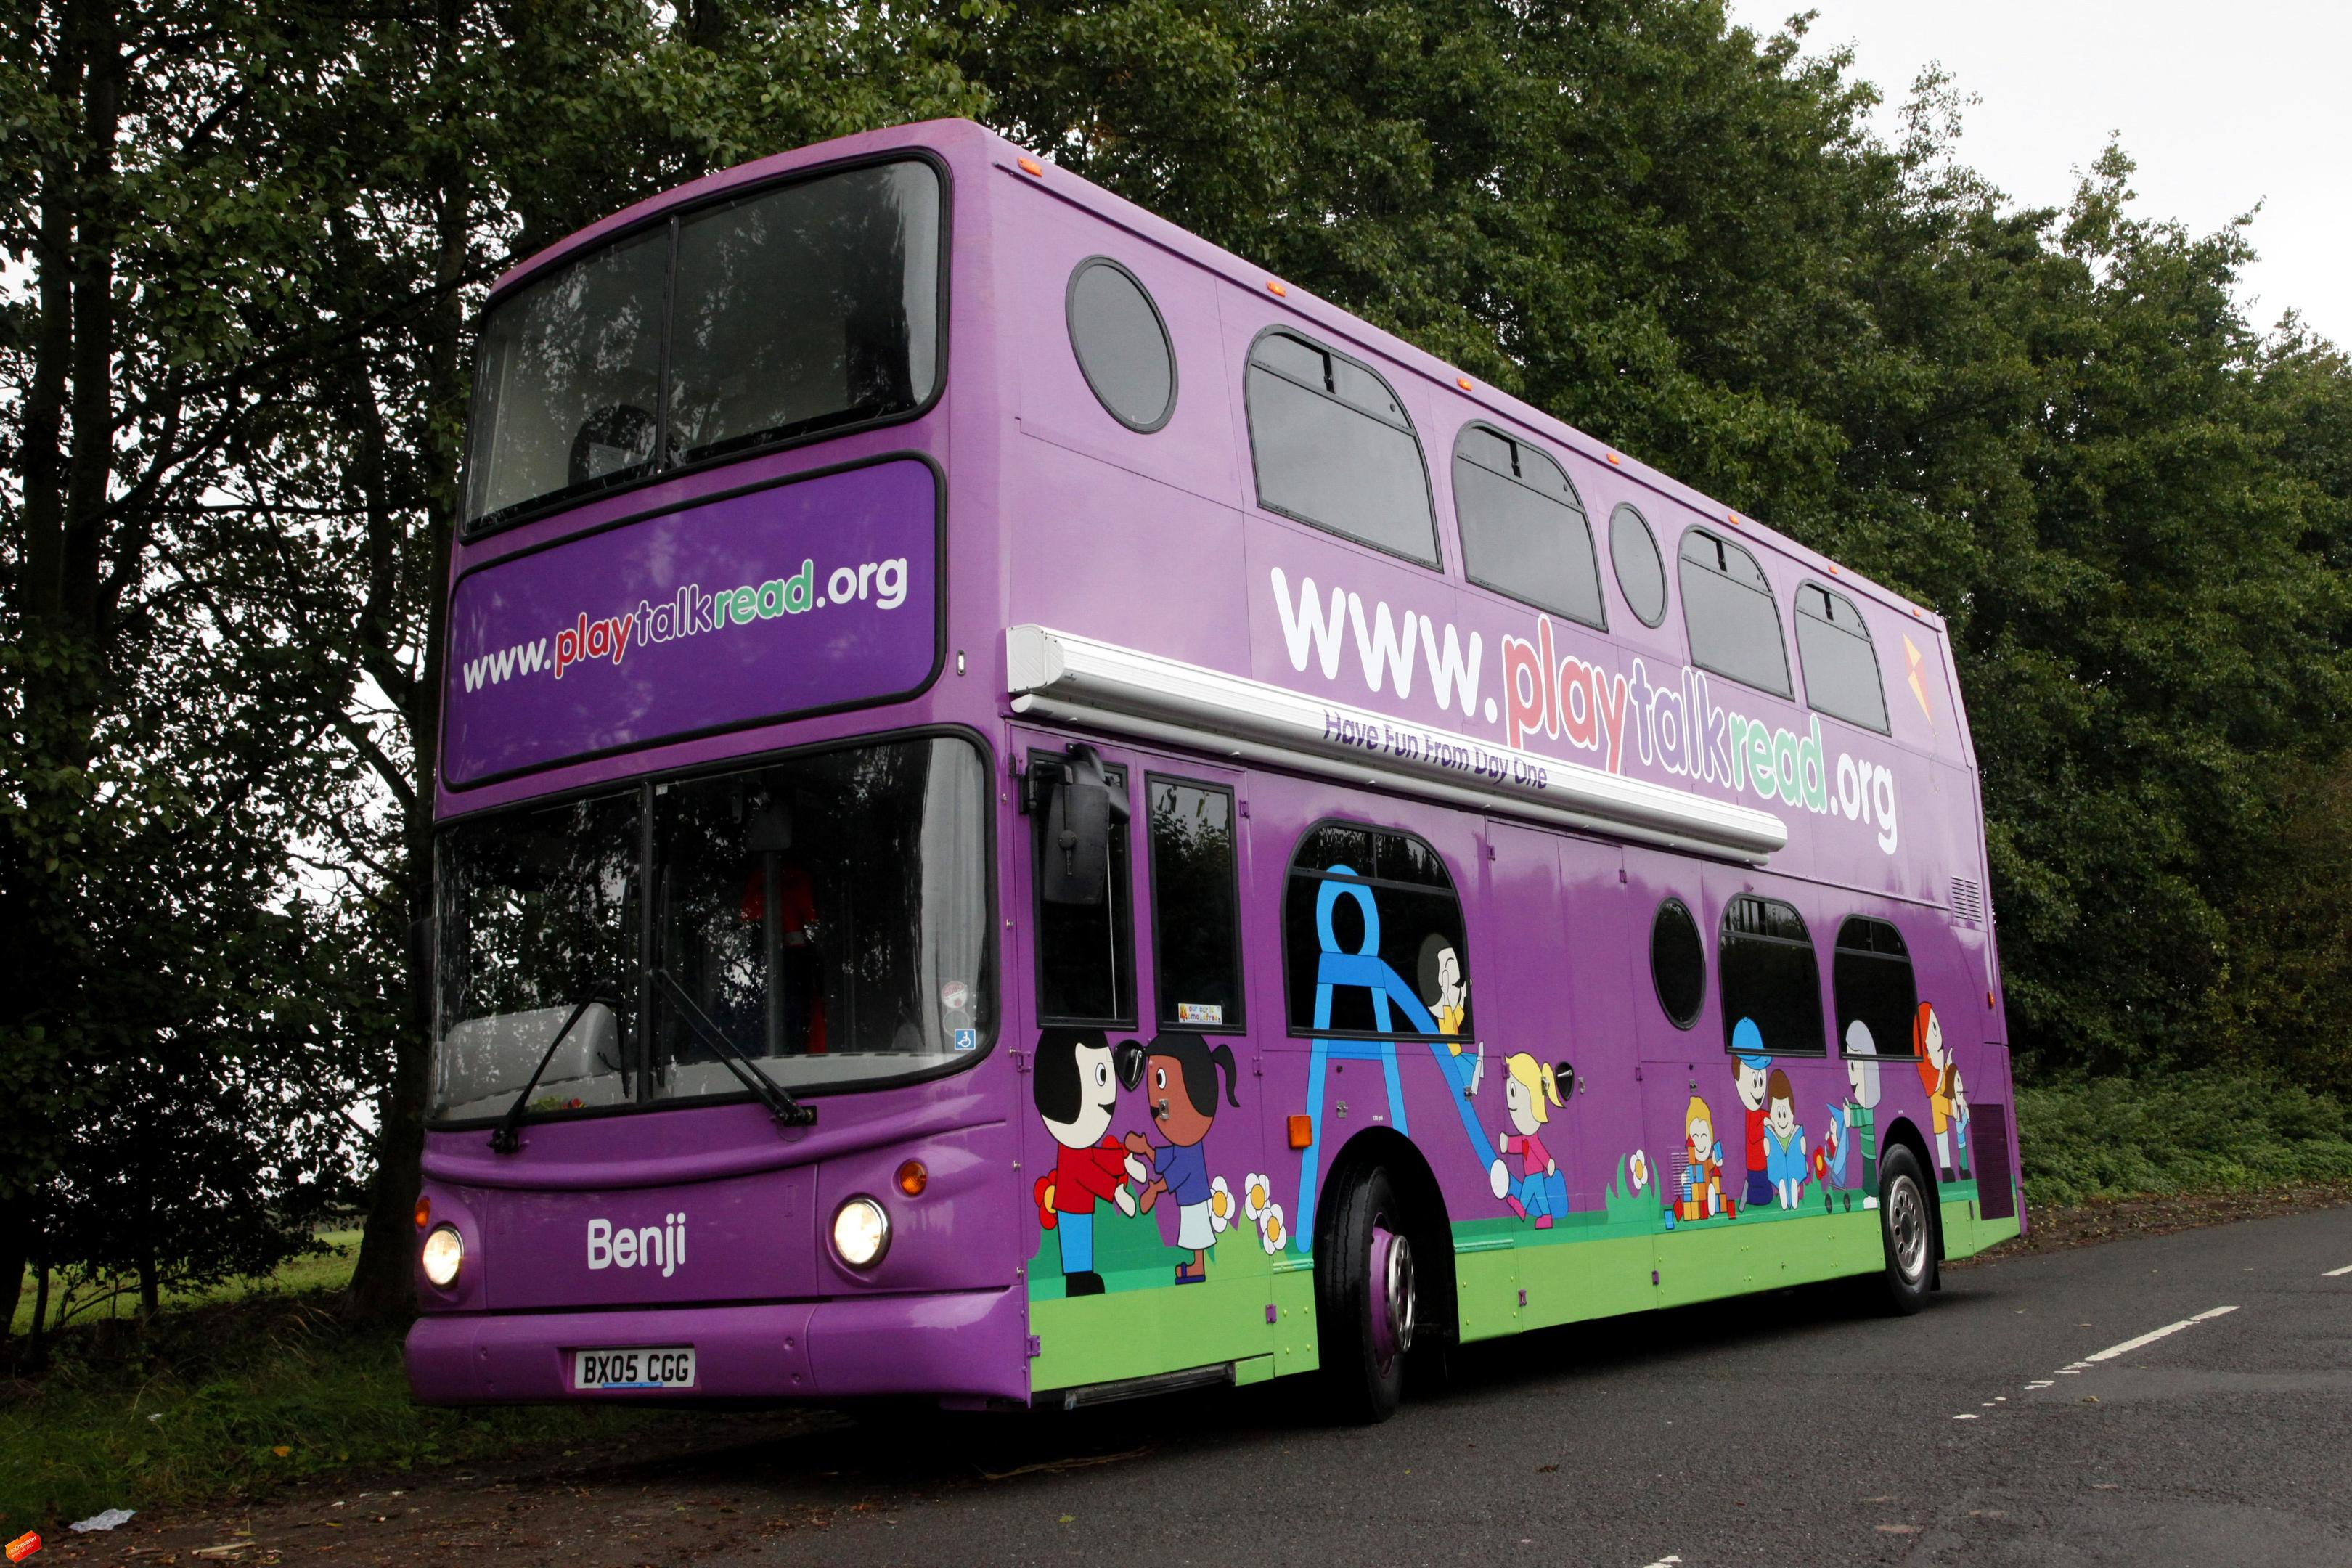 The PlayTalkRead bus.